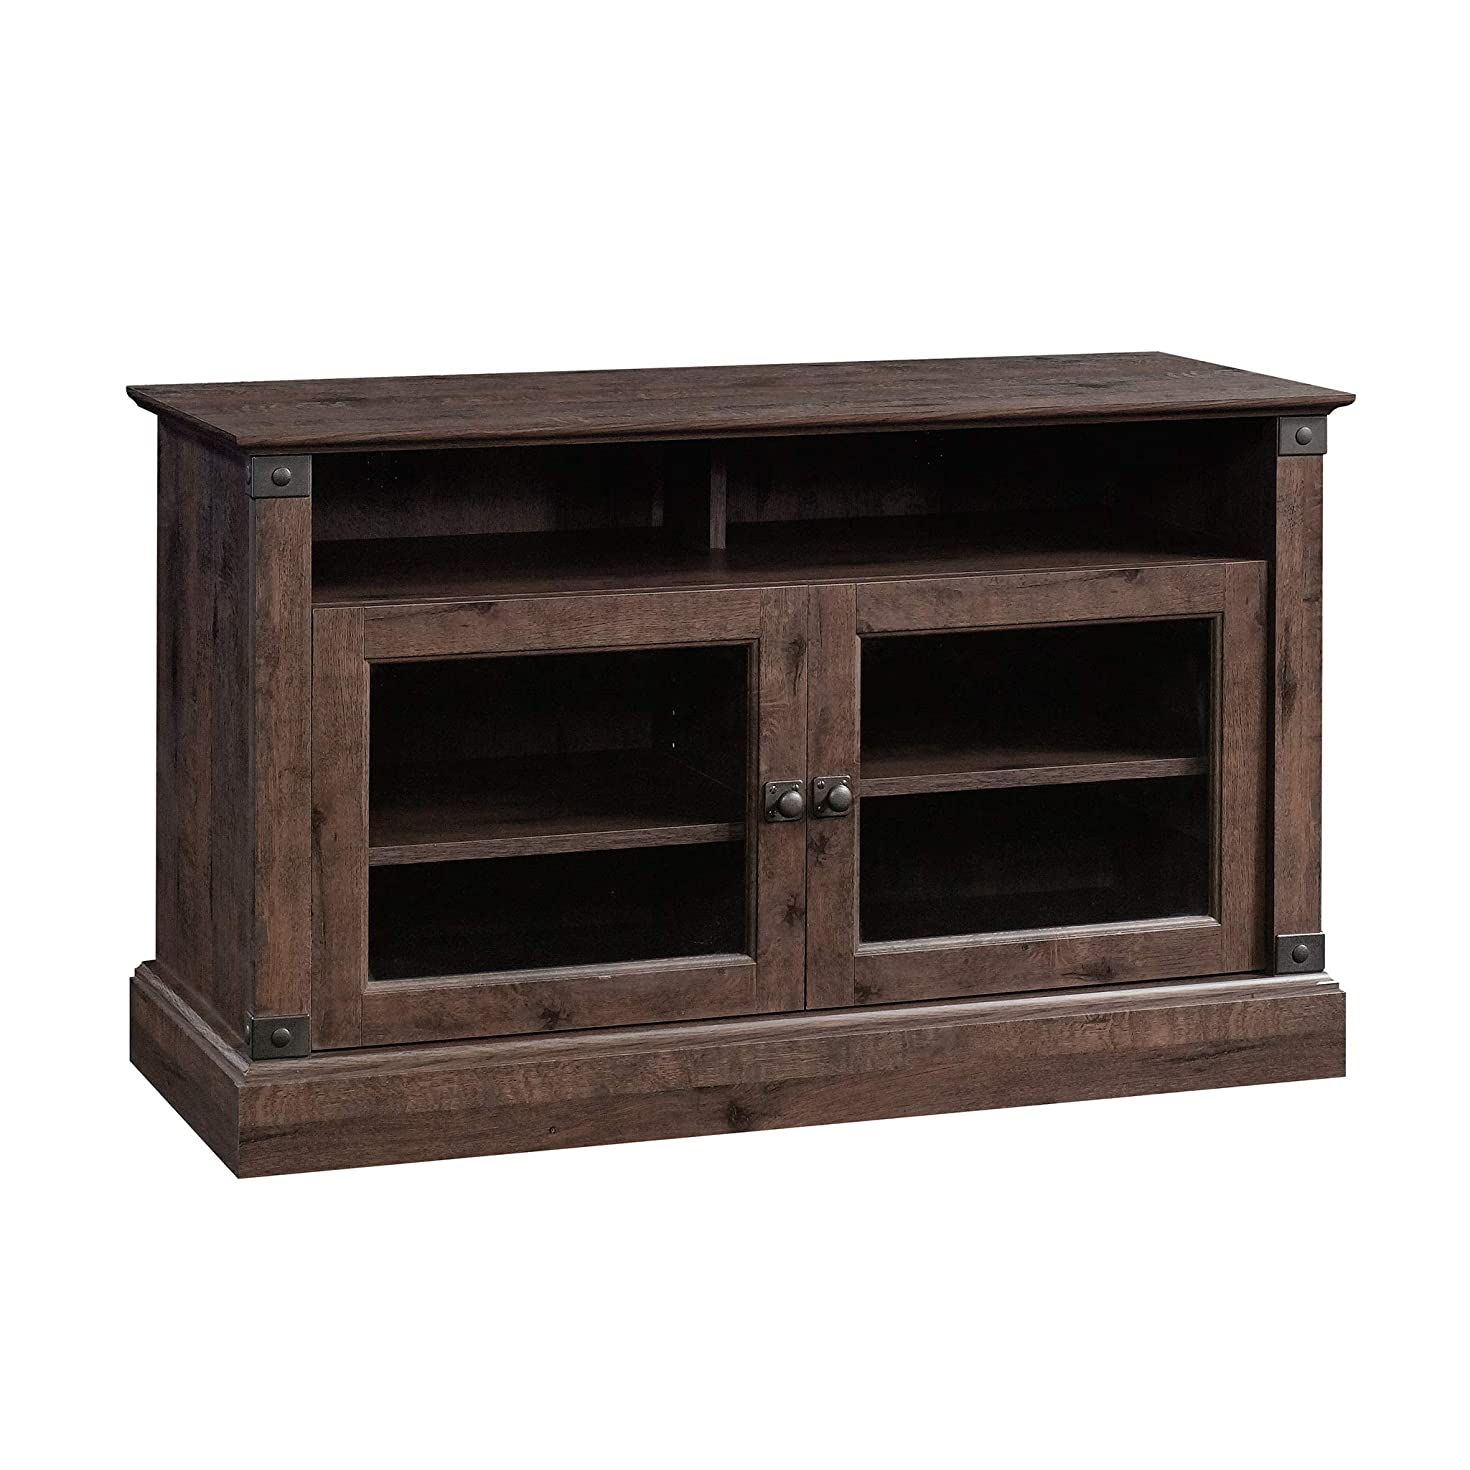 Sauder 422036 Carson Forge Panel TV Stand, For TV's up to 47